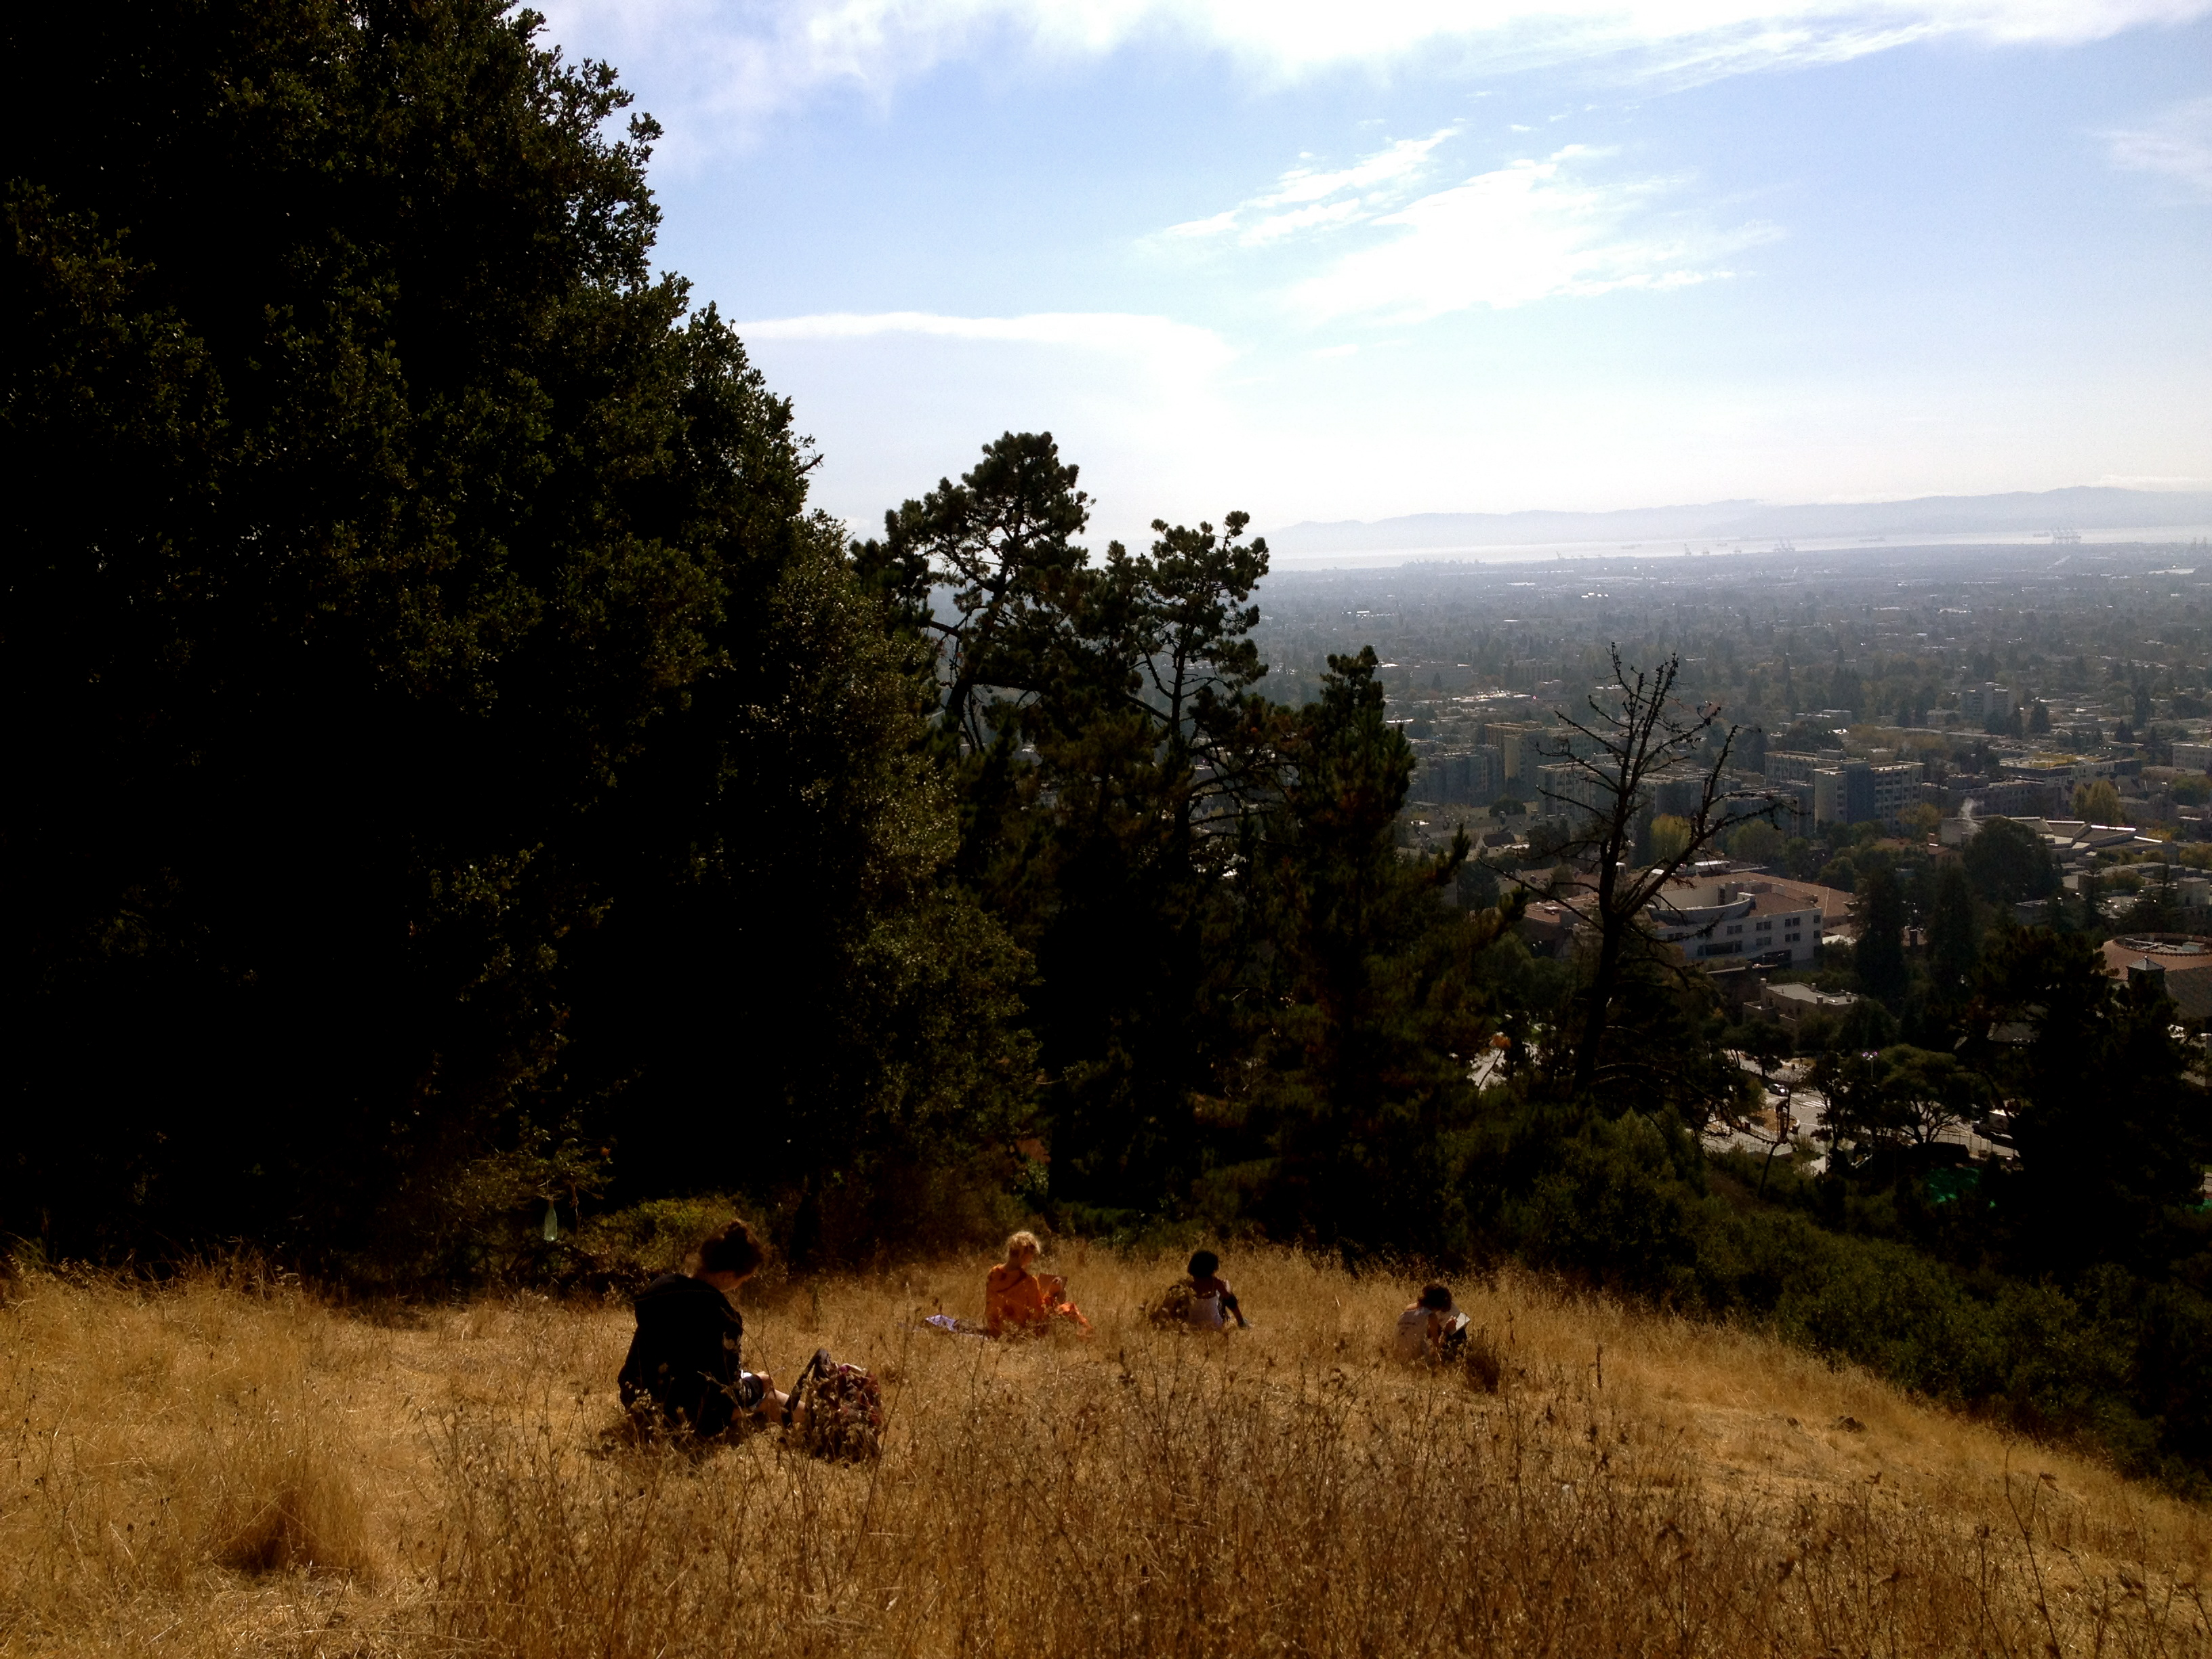 Classmates writing in the Berkeley hills